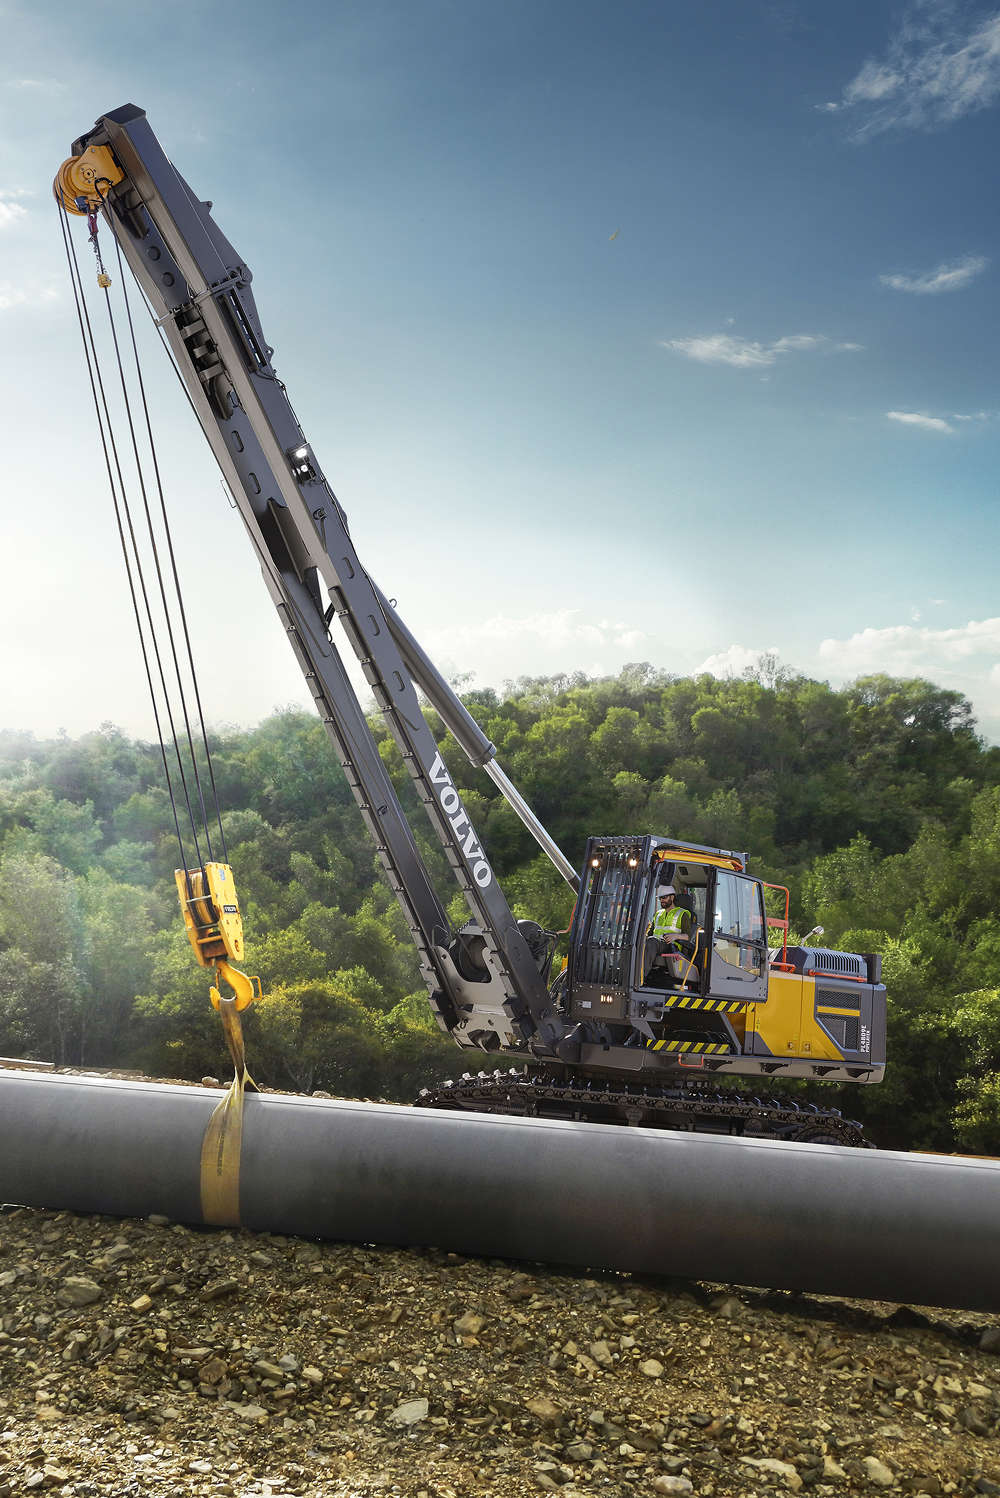 Equipped with the latest Volvo D13J Tier 4 Final engine, the PL4809E delivers lifting capacity that outperforms the largest traditional side booms in its size class.